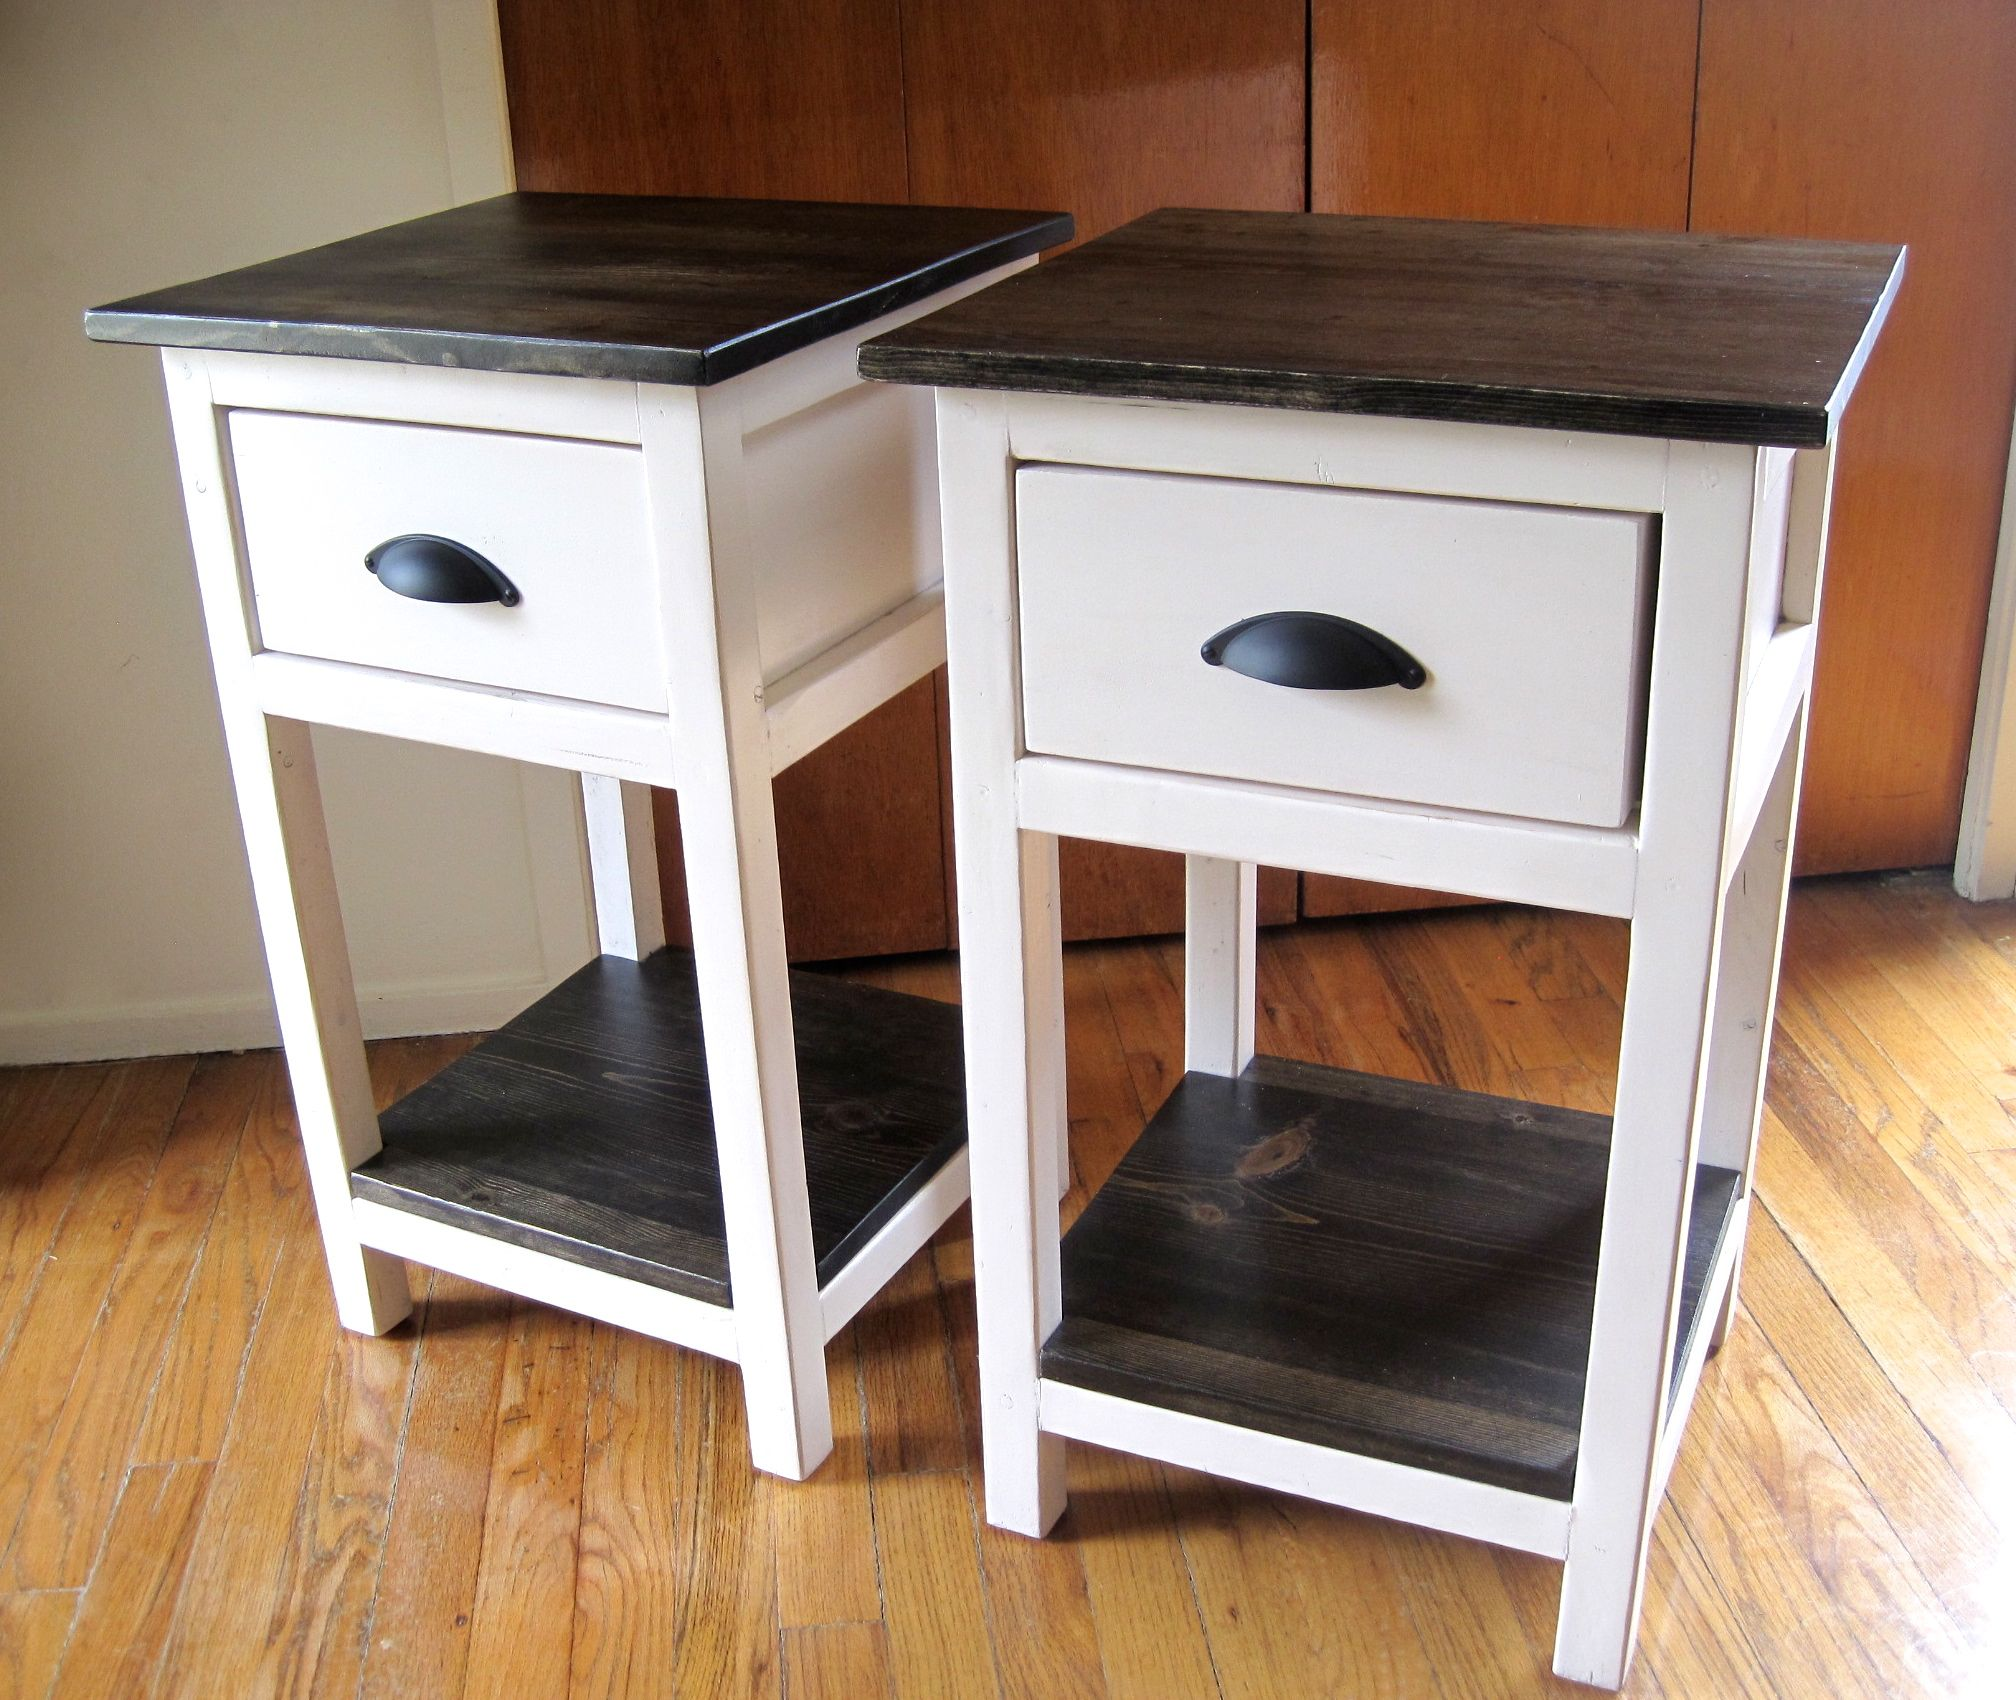 Ana white build a mini farmhouse bedside table plans for Side table plans